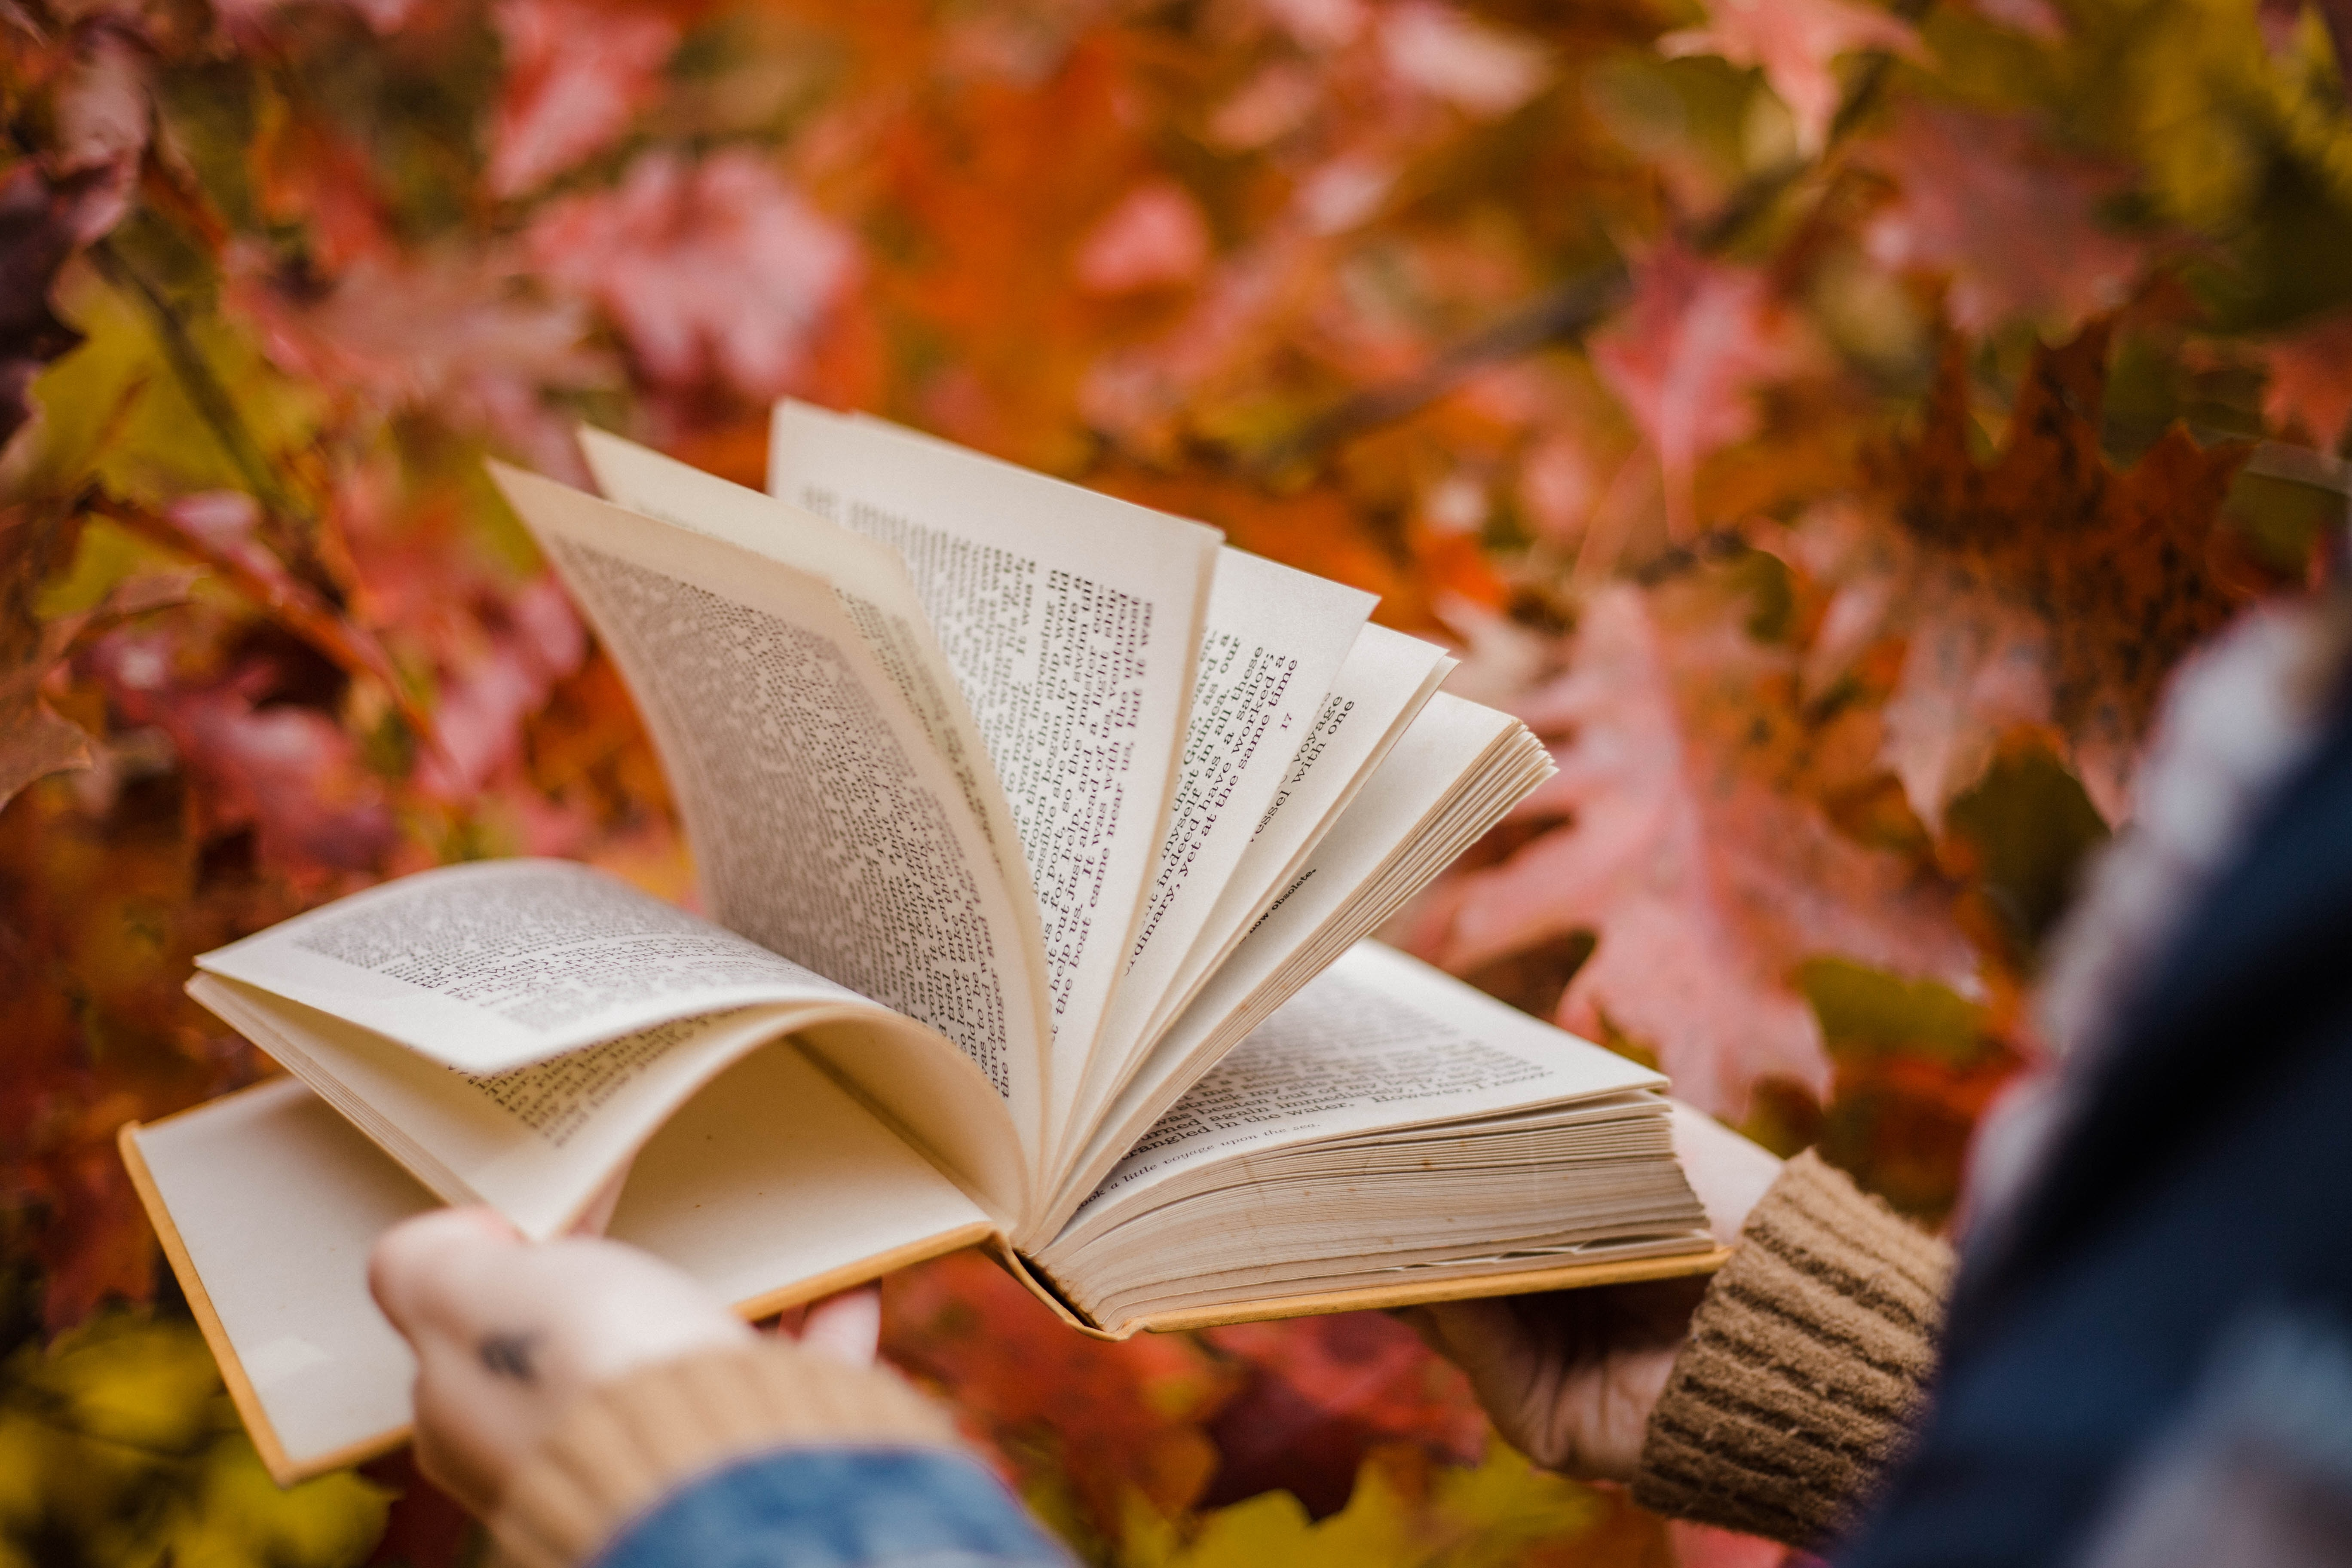 Person flipping through a book with fall leaves in the background.